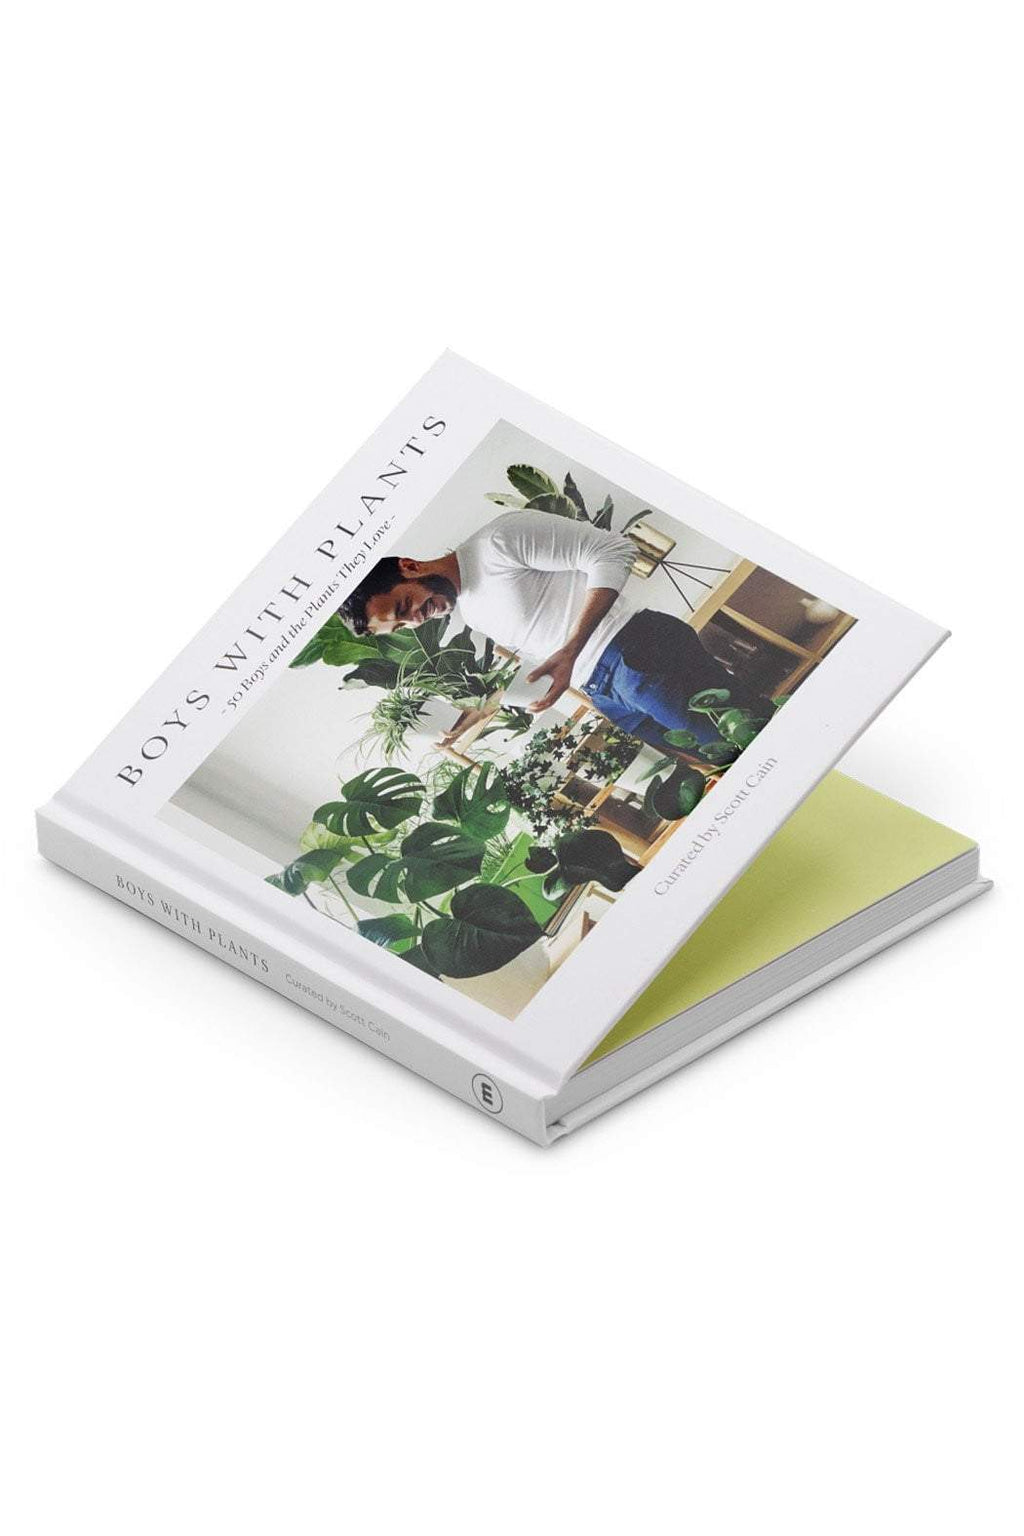 Boys With Plants: 50 Boys and the Plants They Love  By Scott Cain